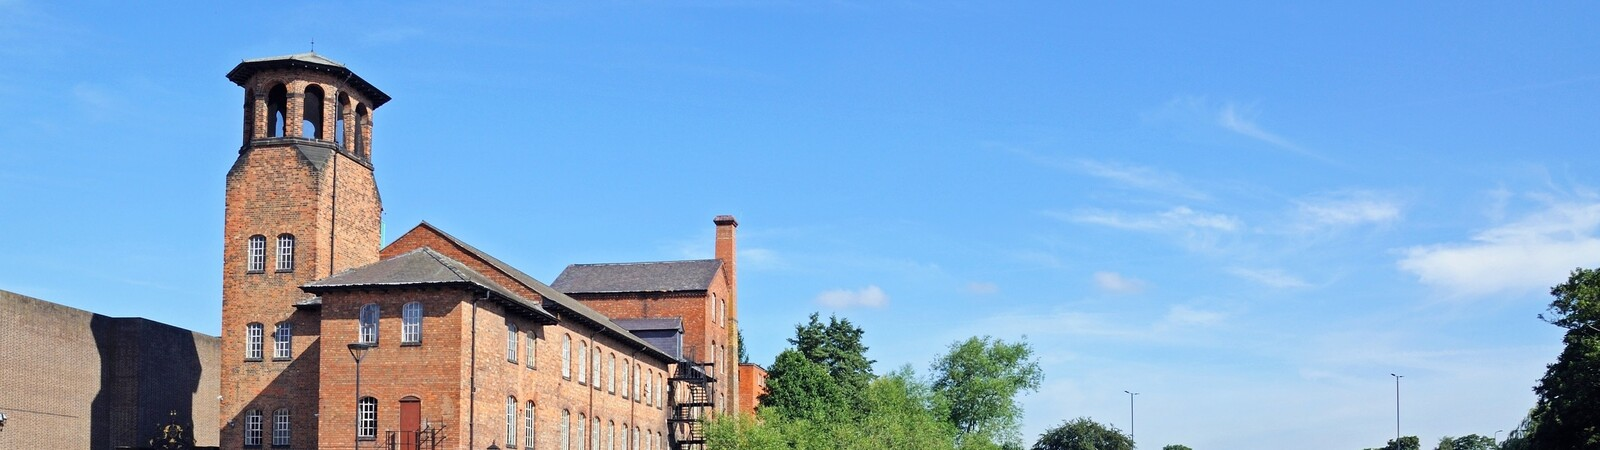 Derby Silk Mill next to the river Derwent